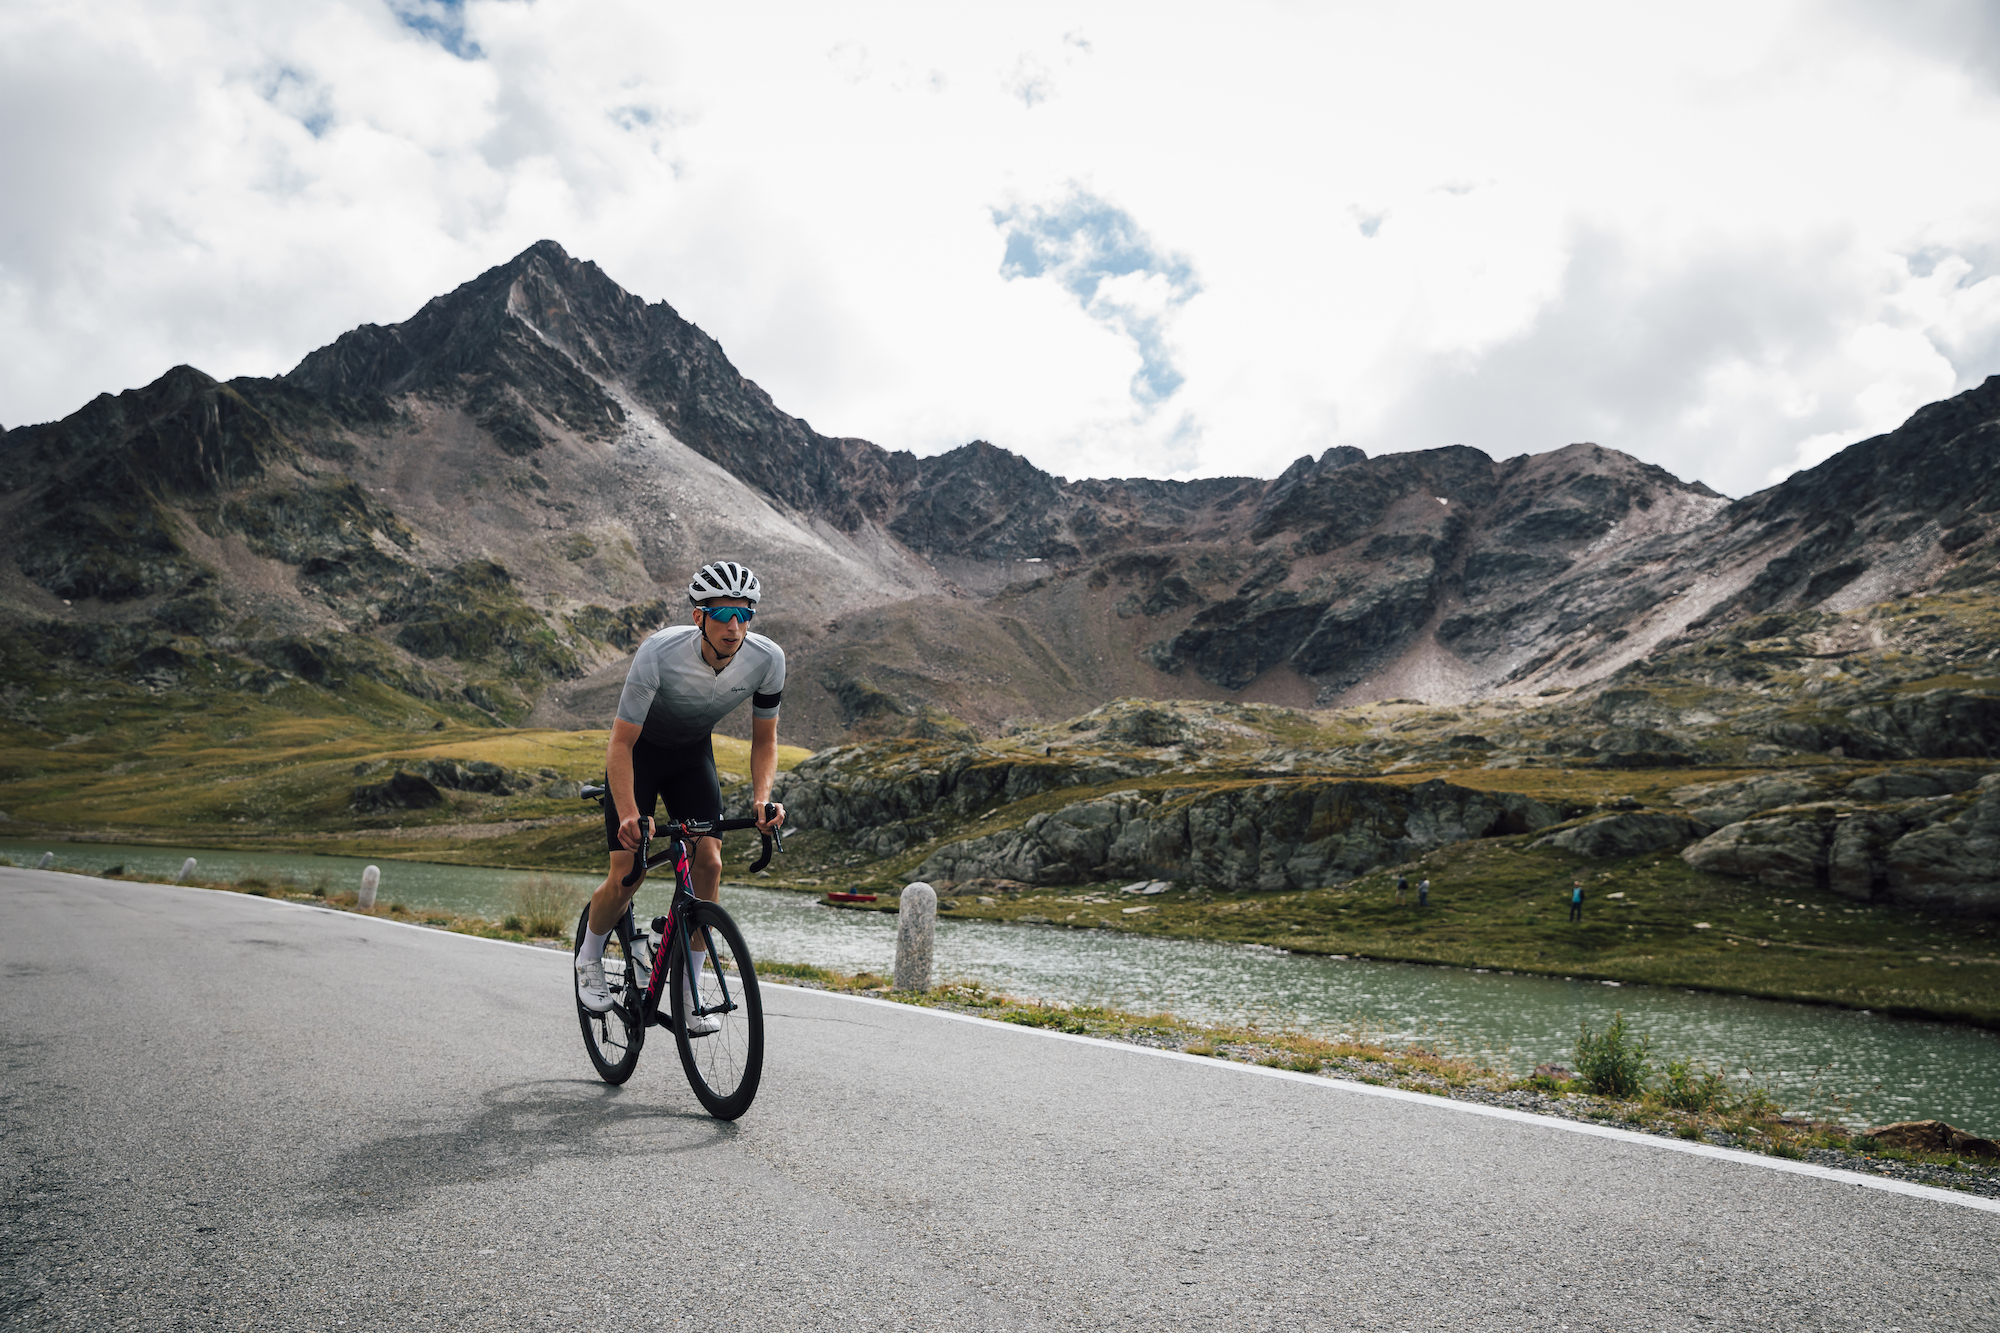 How to master riding long climbs